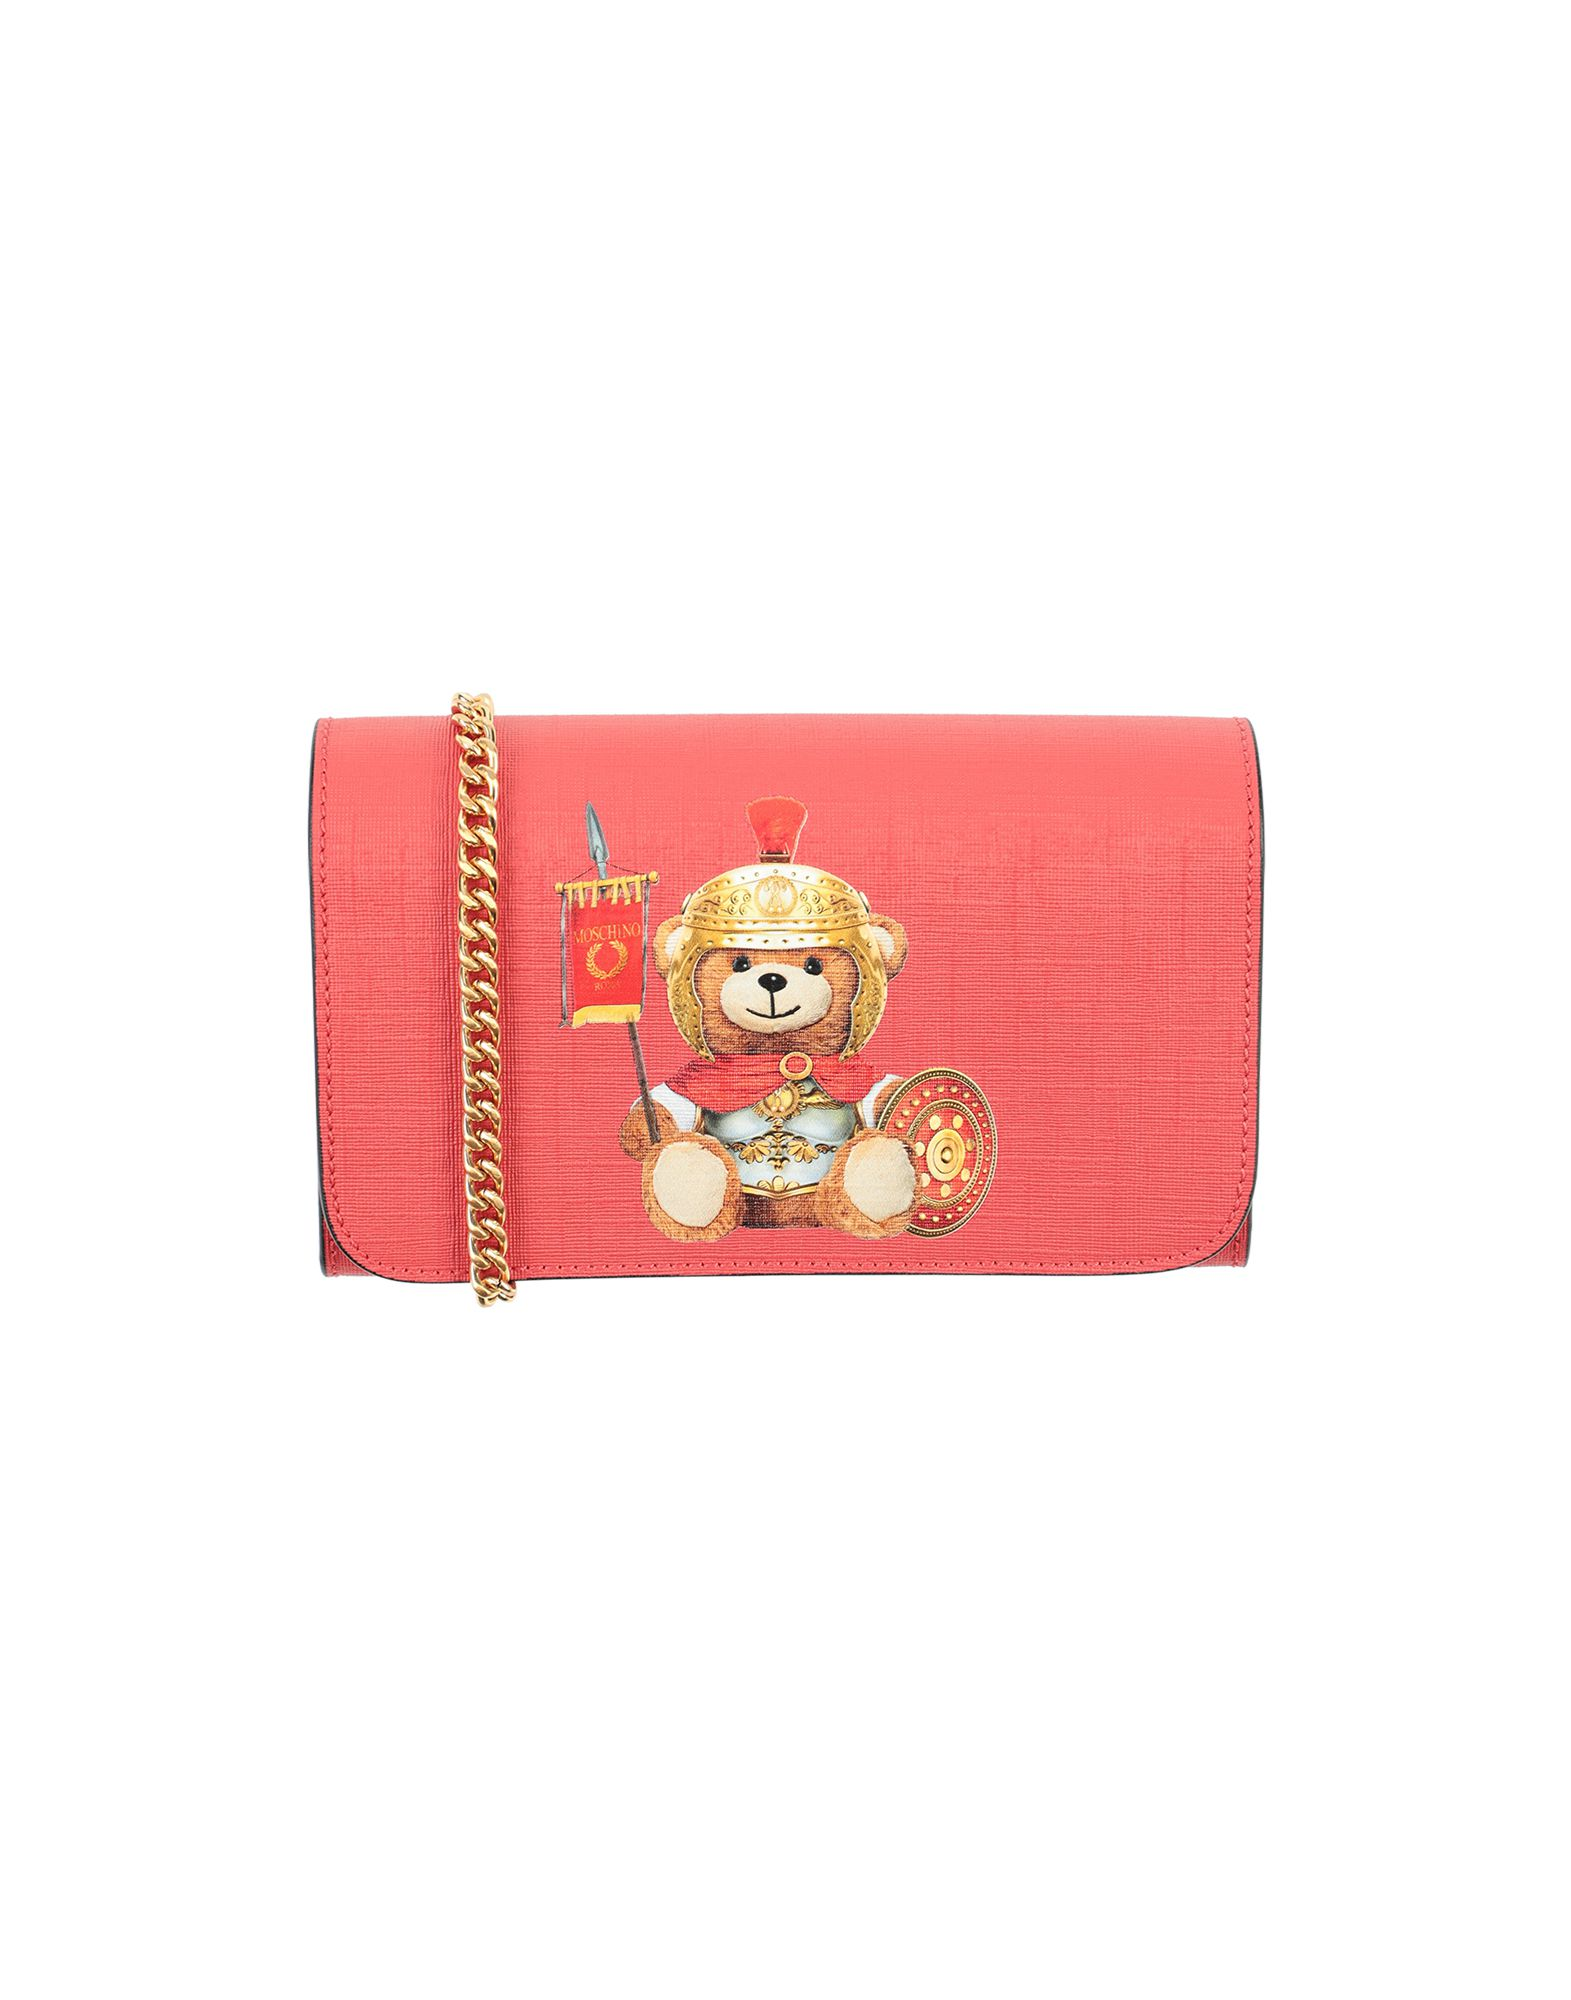 MOSCHINO Wallets - Item 46709513